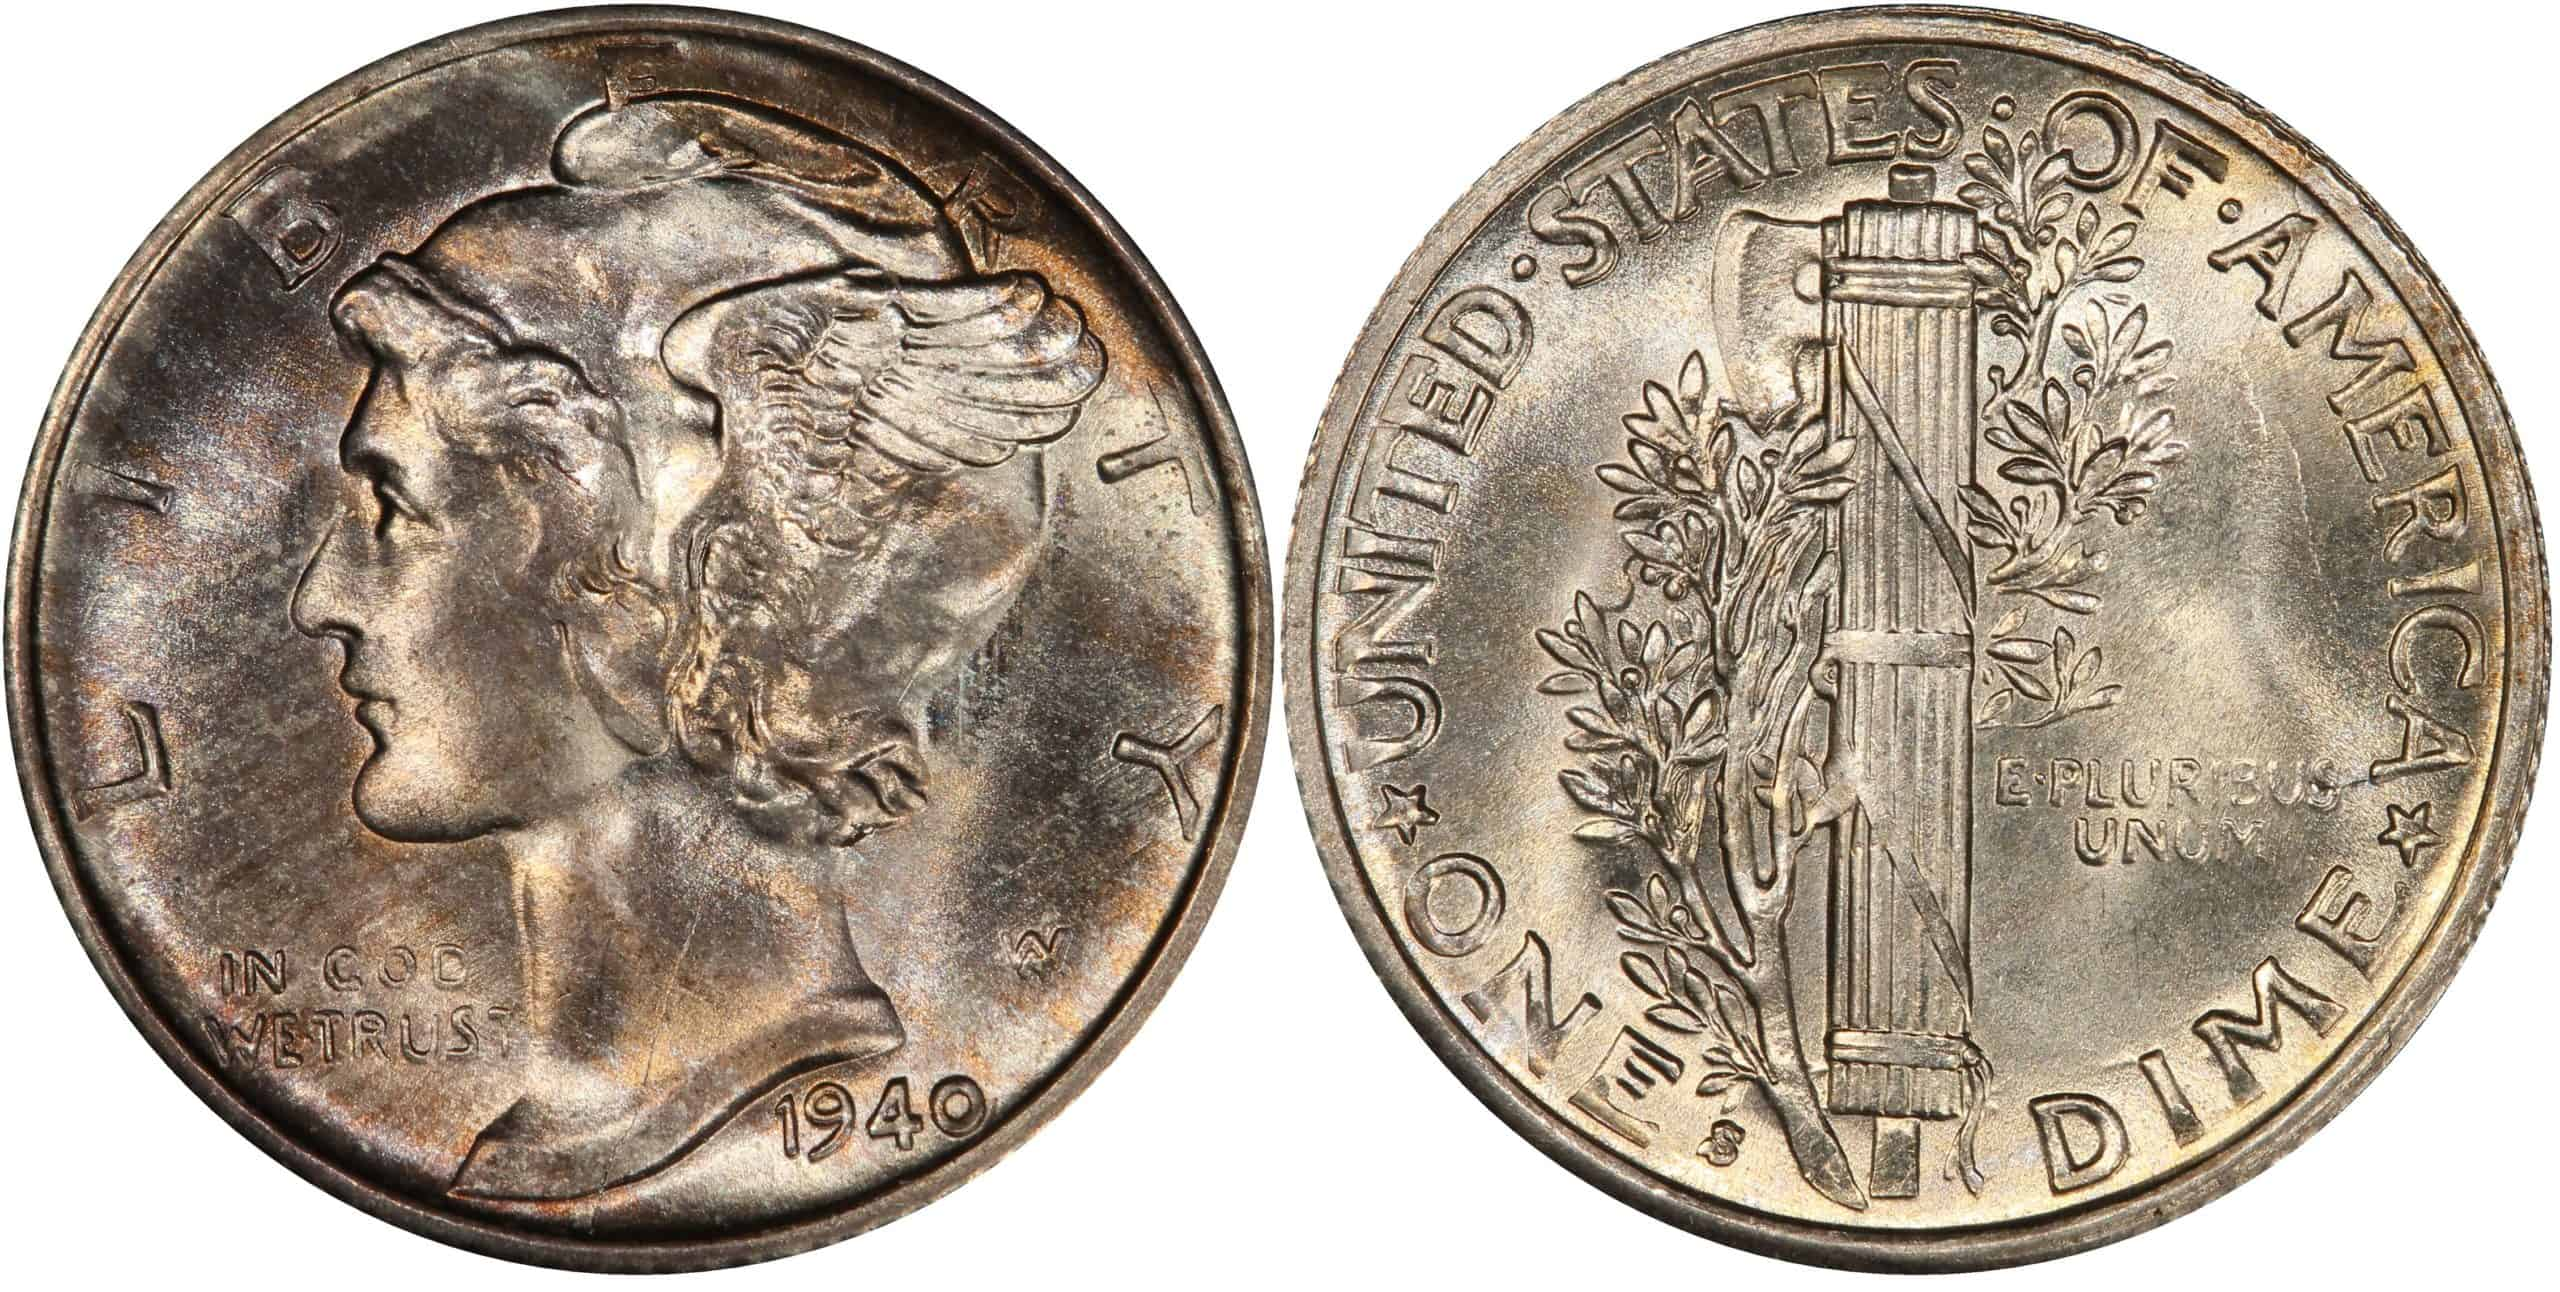 What is the 1940 Dime